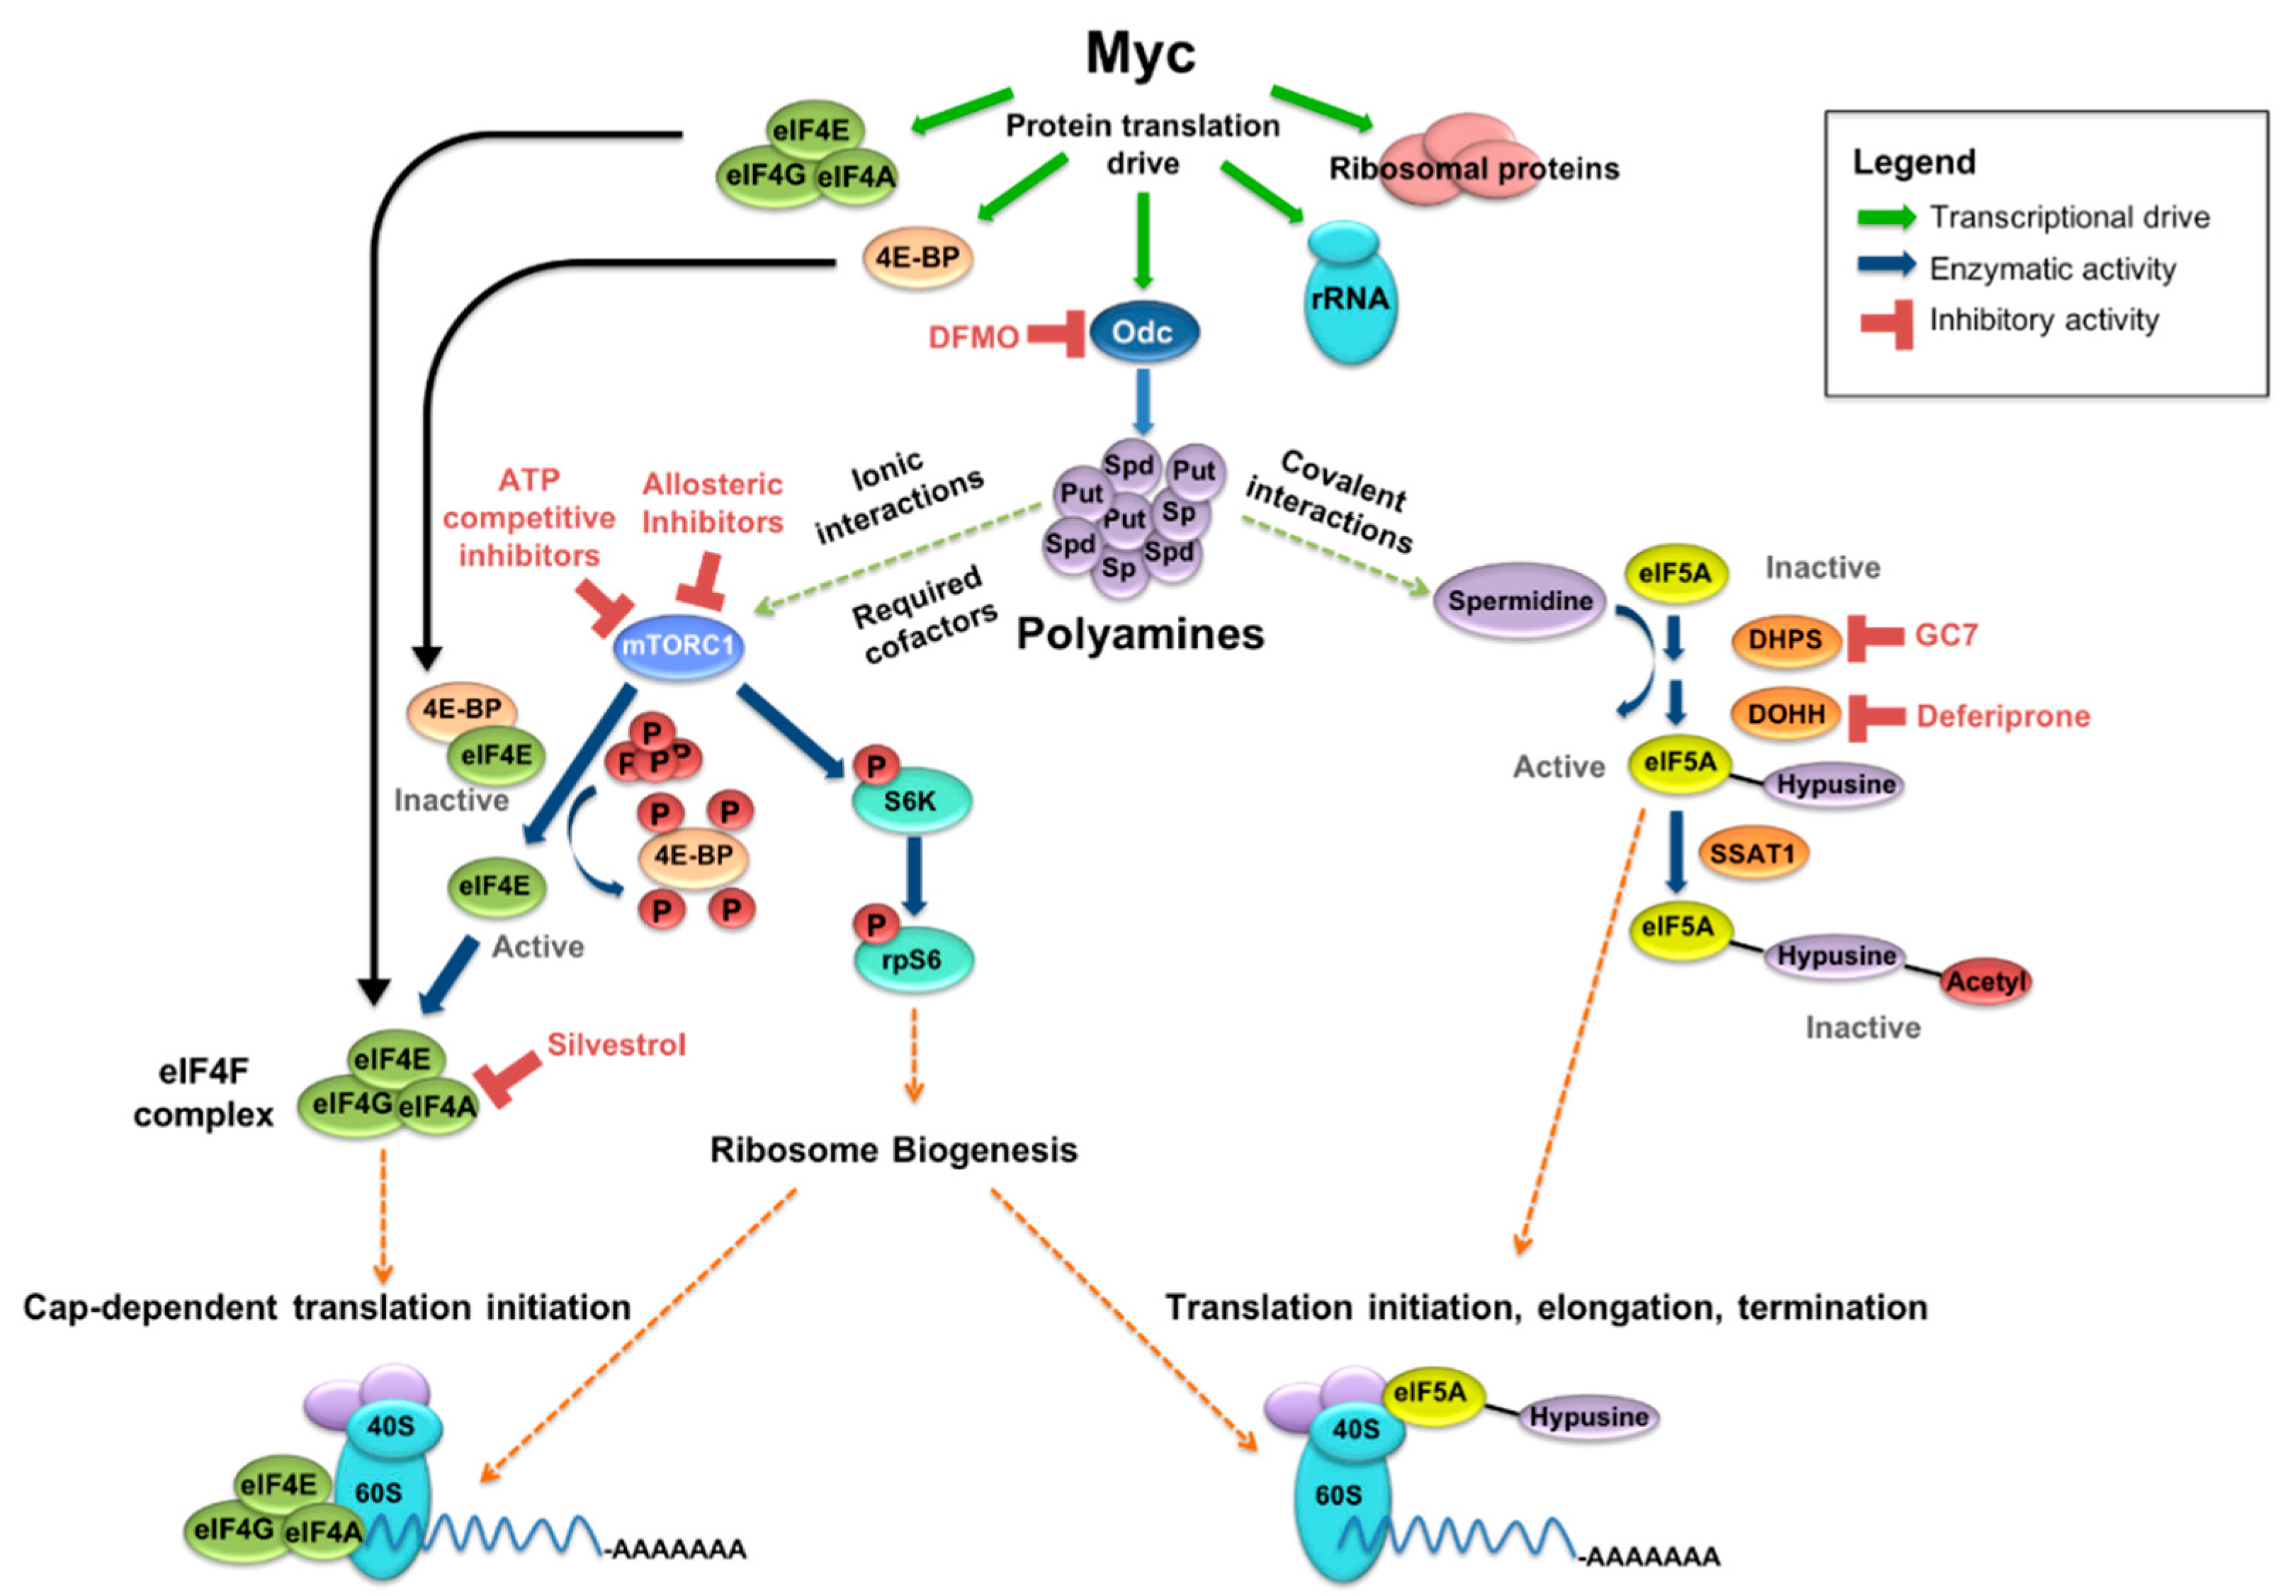 Medical Sciences | Free Full-Text | Myc, Oncogenic Protein